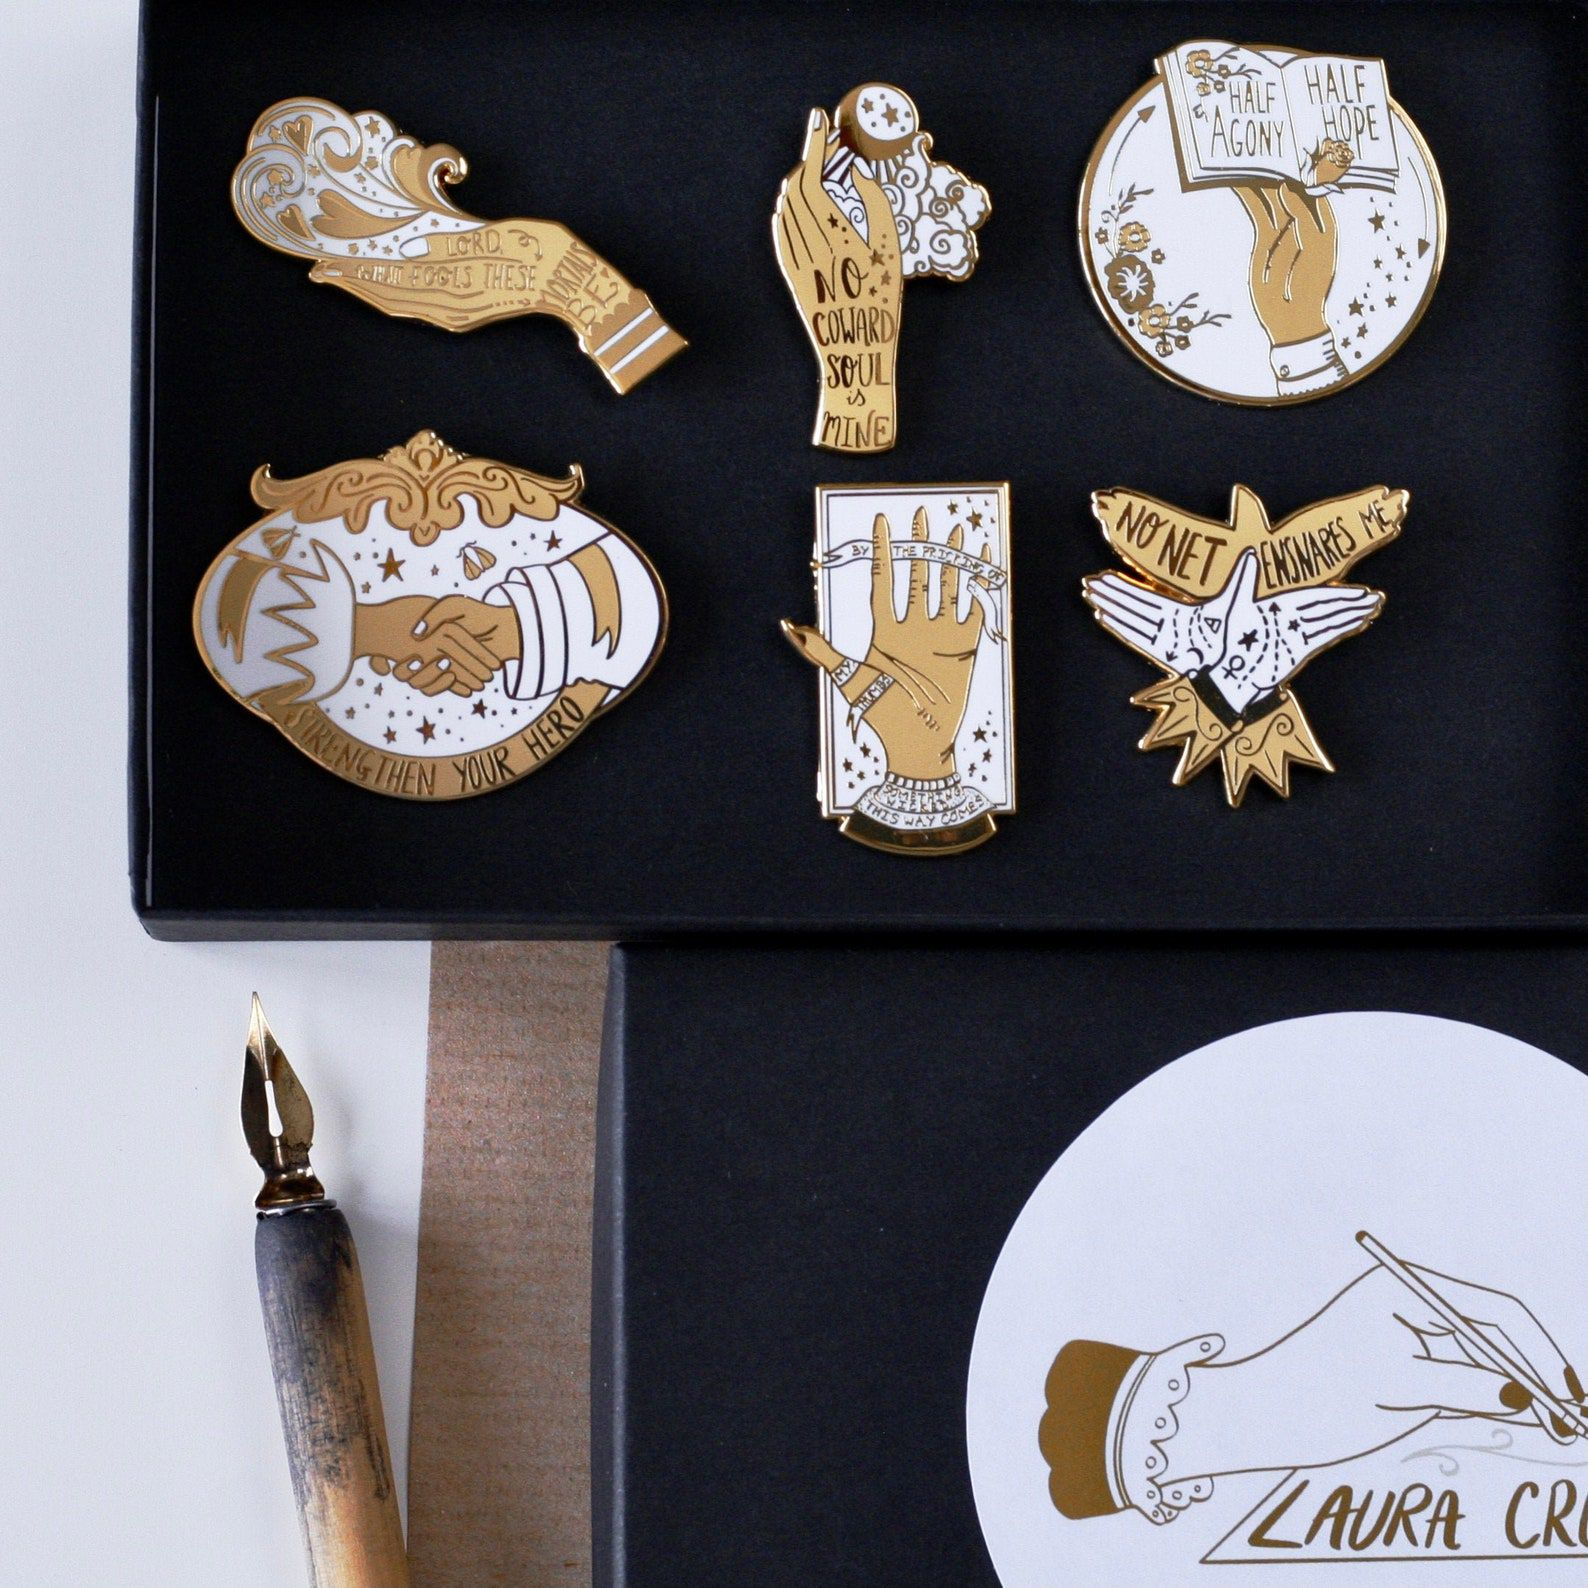 A set of six white and gold enamel pins featuring various illustrations of hands and florals, along with quotes from classic Victorian literature